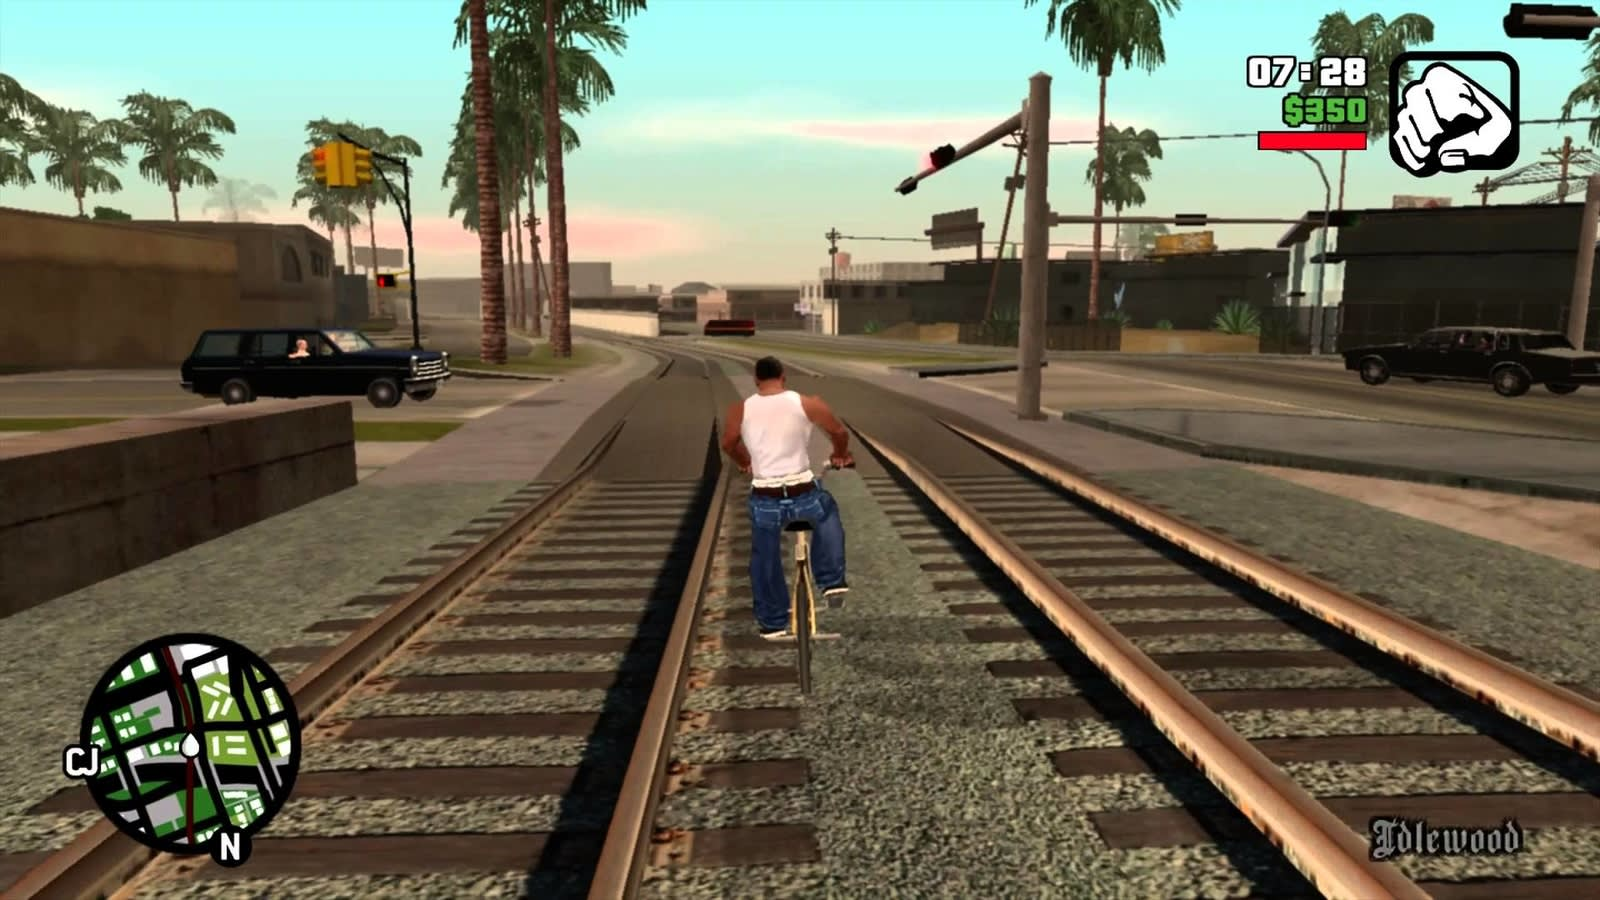 gta 5 or gta san andreas